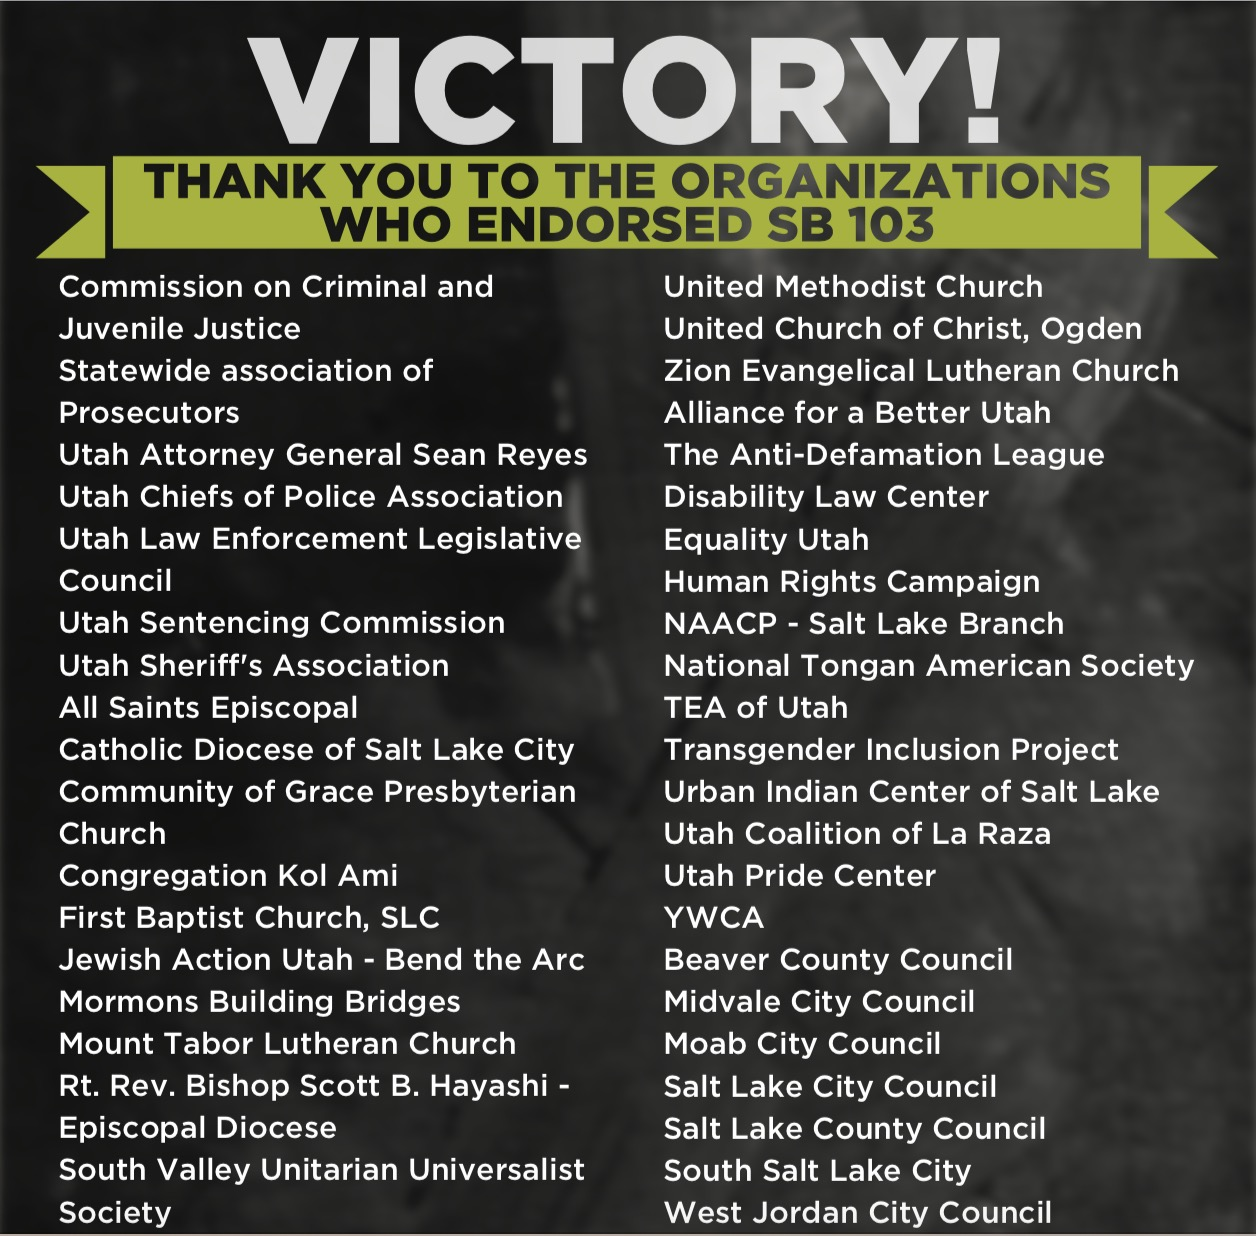 Victory graphic featuring all the organizations signing onto the call for banning conversion therapy in Utah for minors